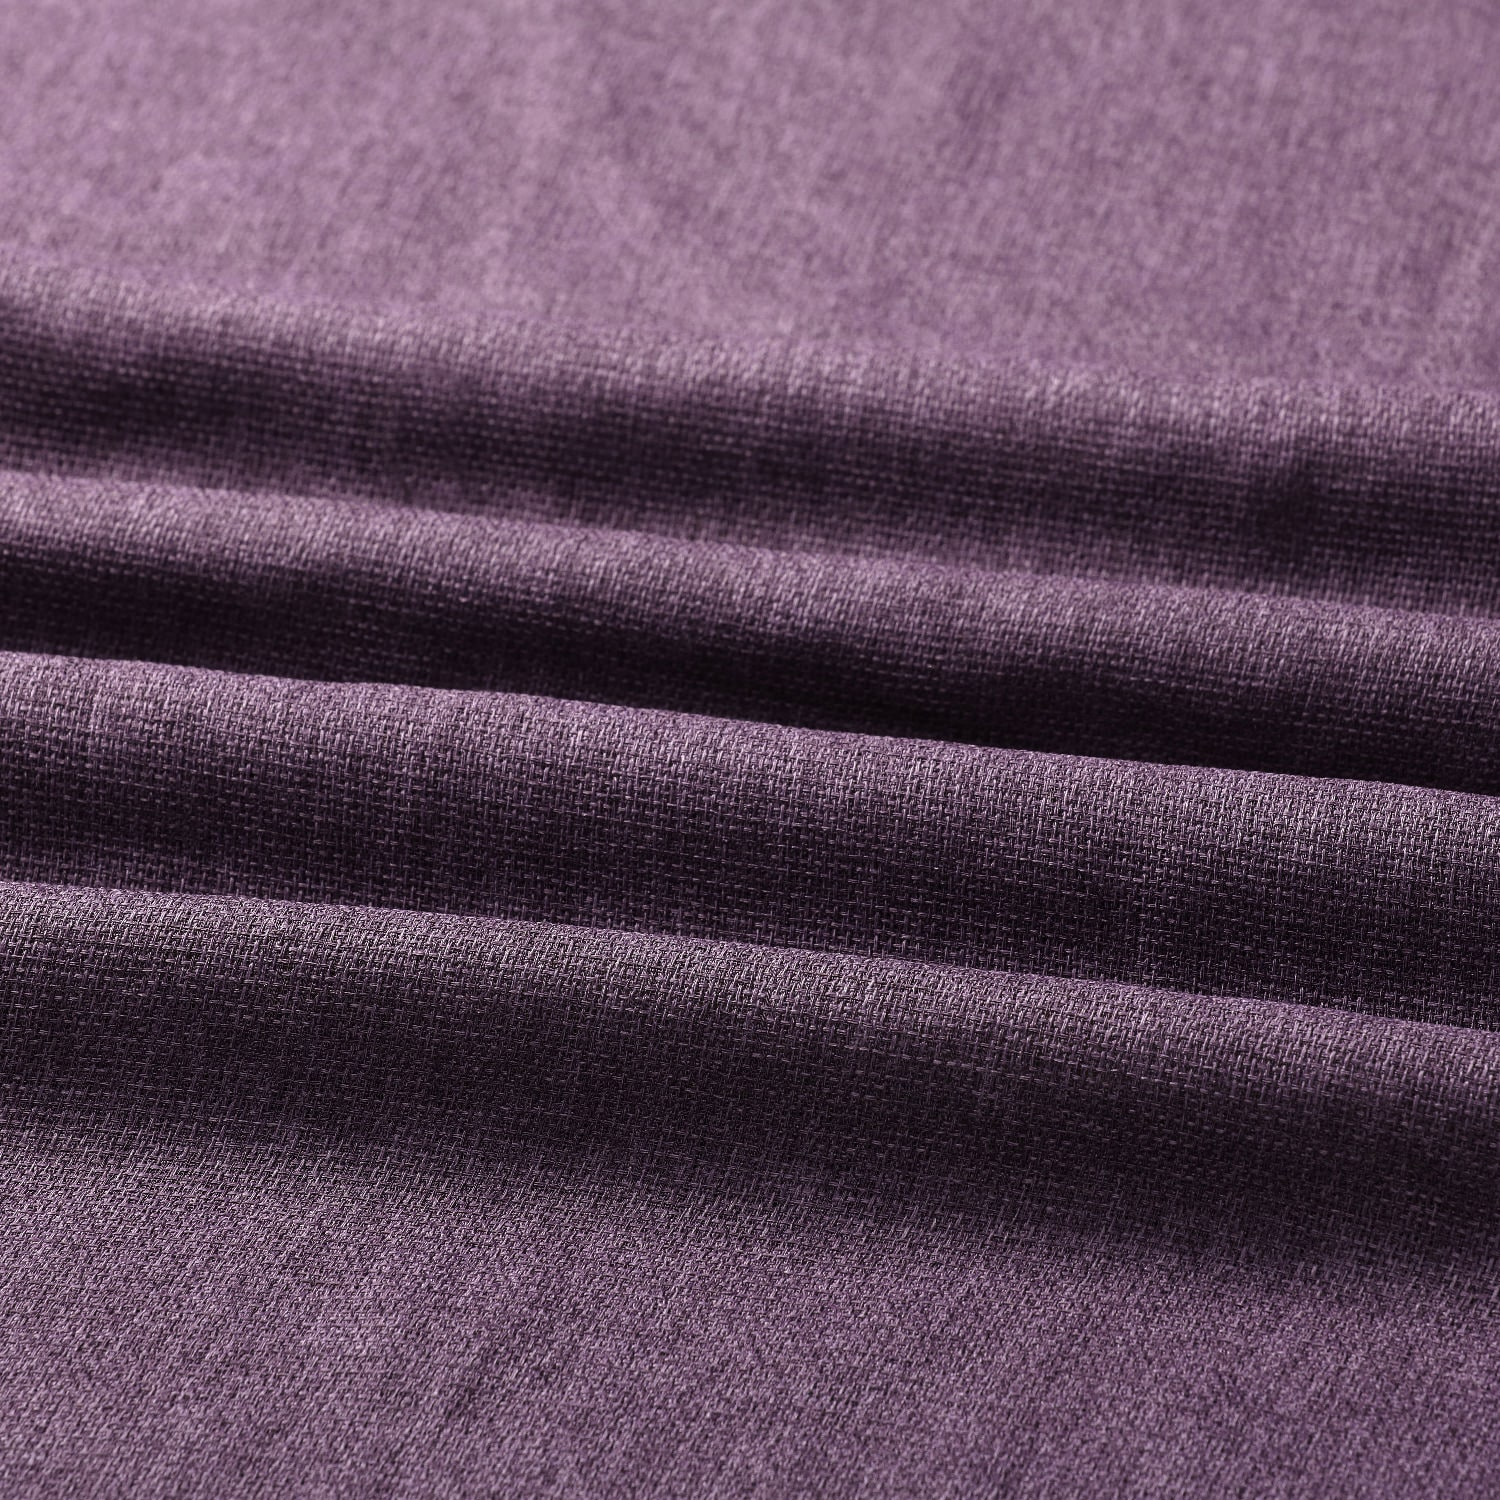 Stormy Purple Faux Linen Sheer Swatch